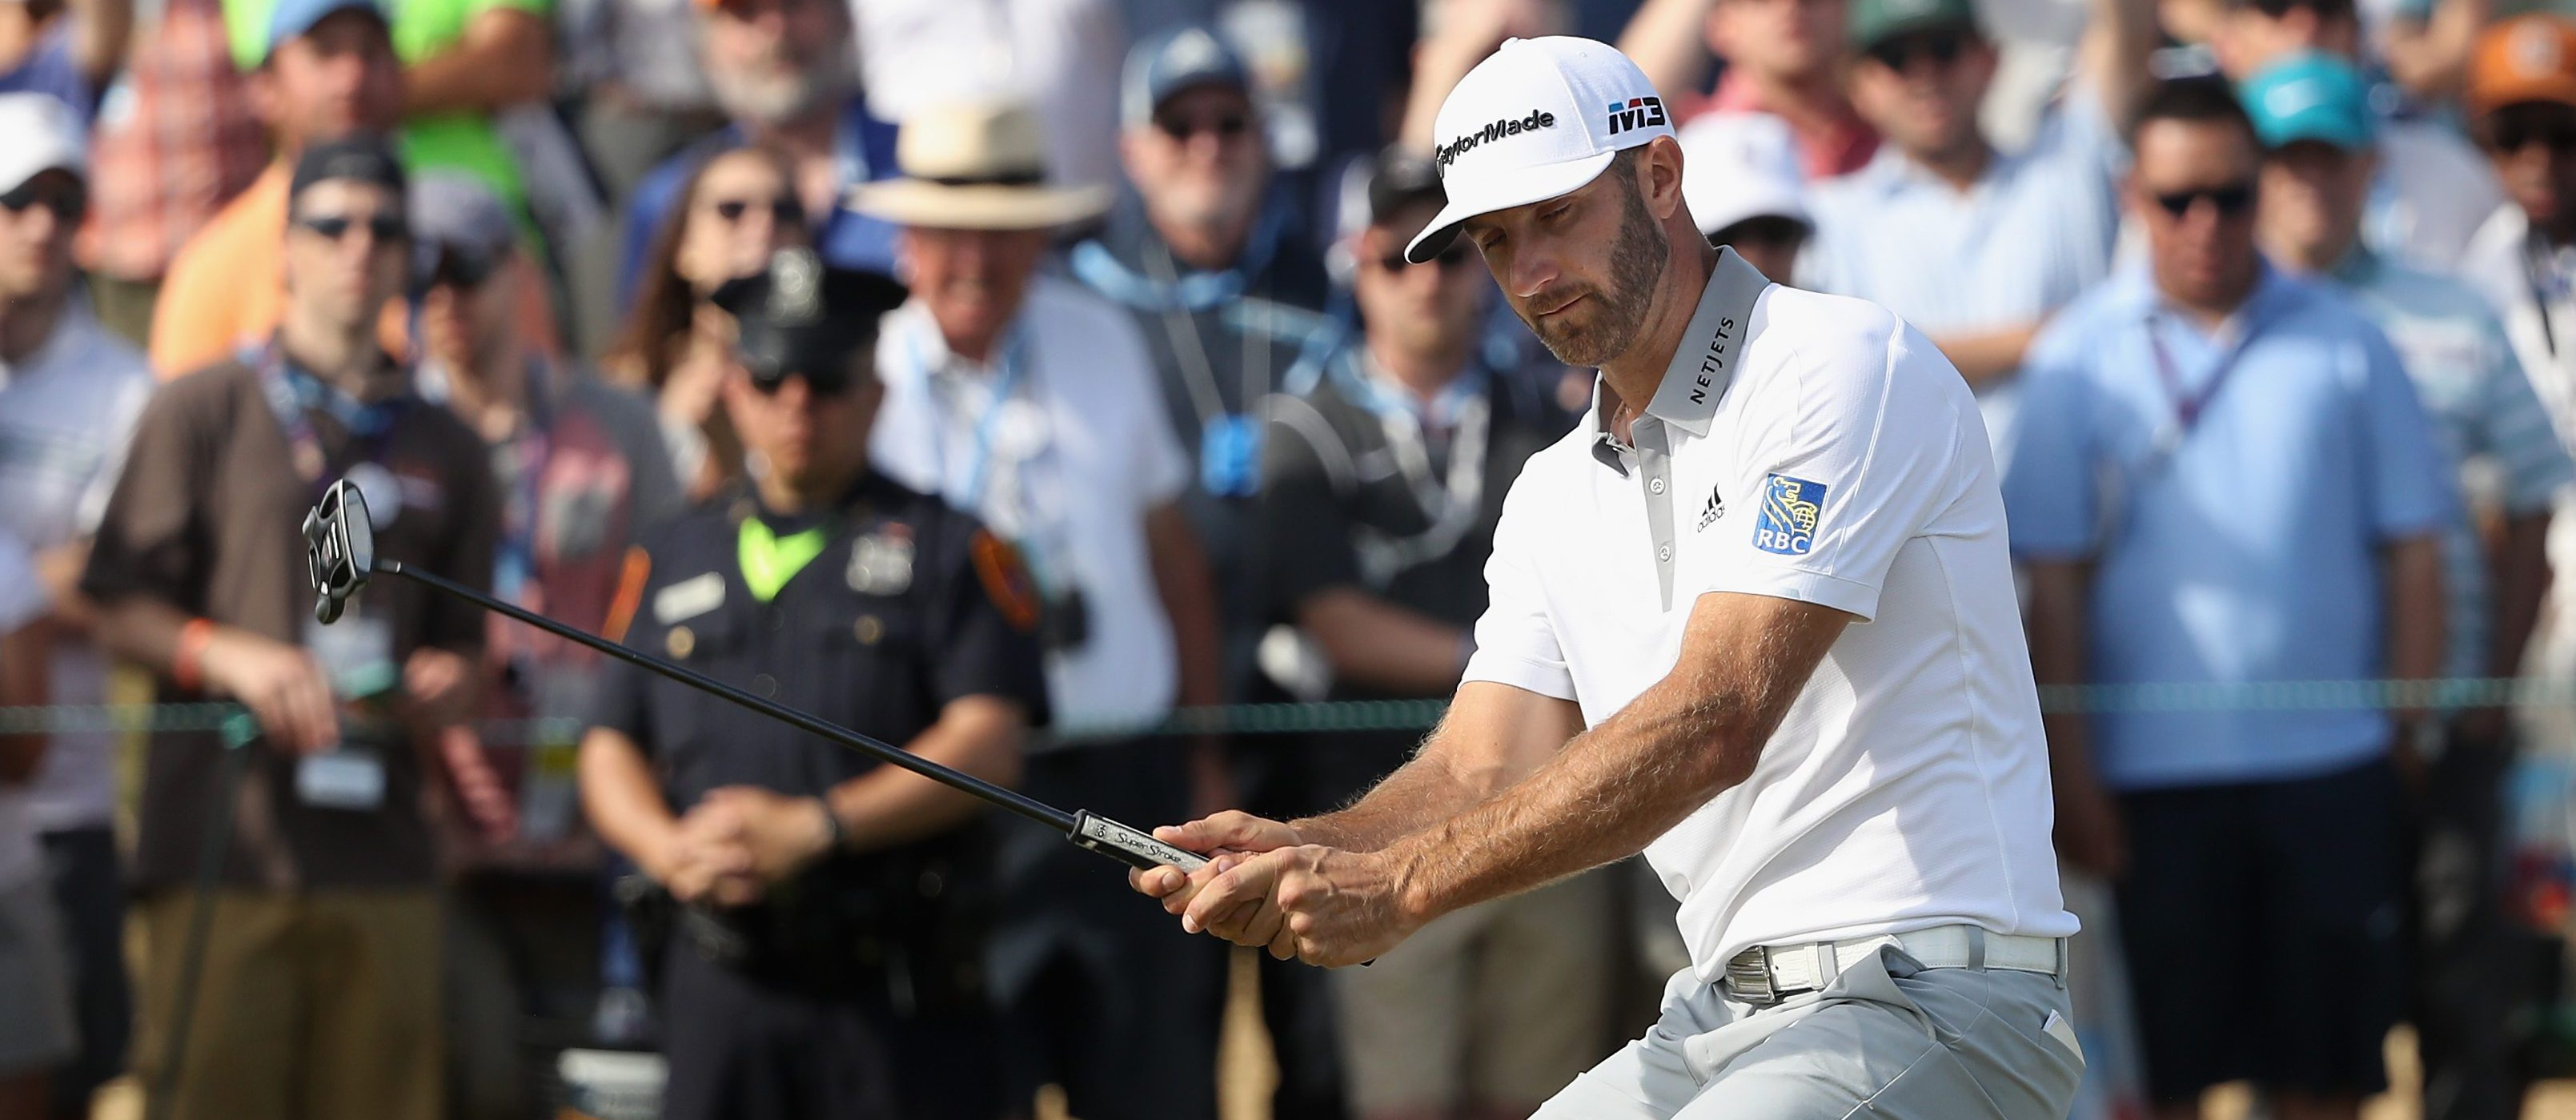 SOUTHAMPTON, NY - JUNE 17: Dustin Johnson of the United States reacts to a missed putt on the 12th green during the final round of the 2018 U.S. Open at Shinnecock Hills Golf Club on June 17, 2018 in Southampton, New York. (Photo by Streeter Lecka/Getty Images)